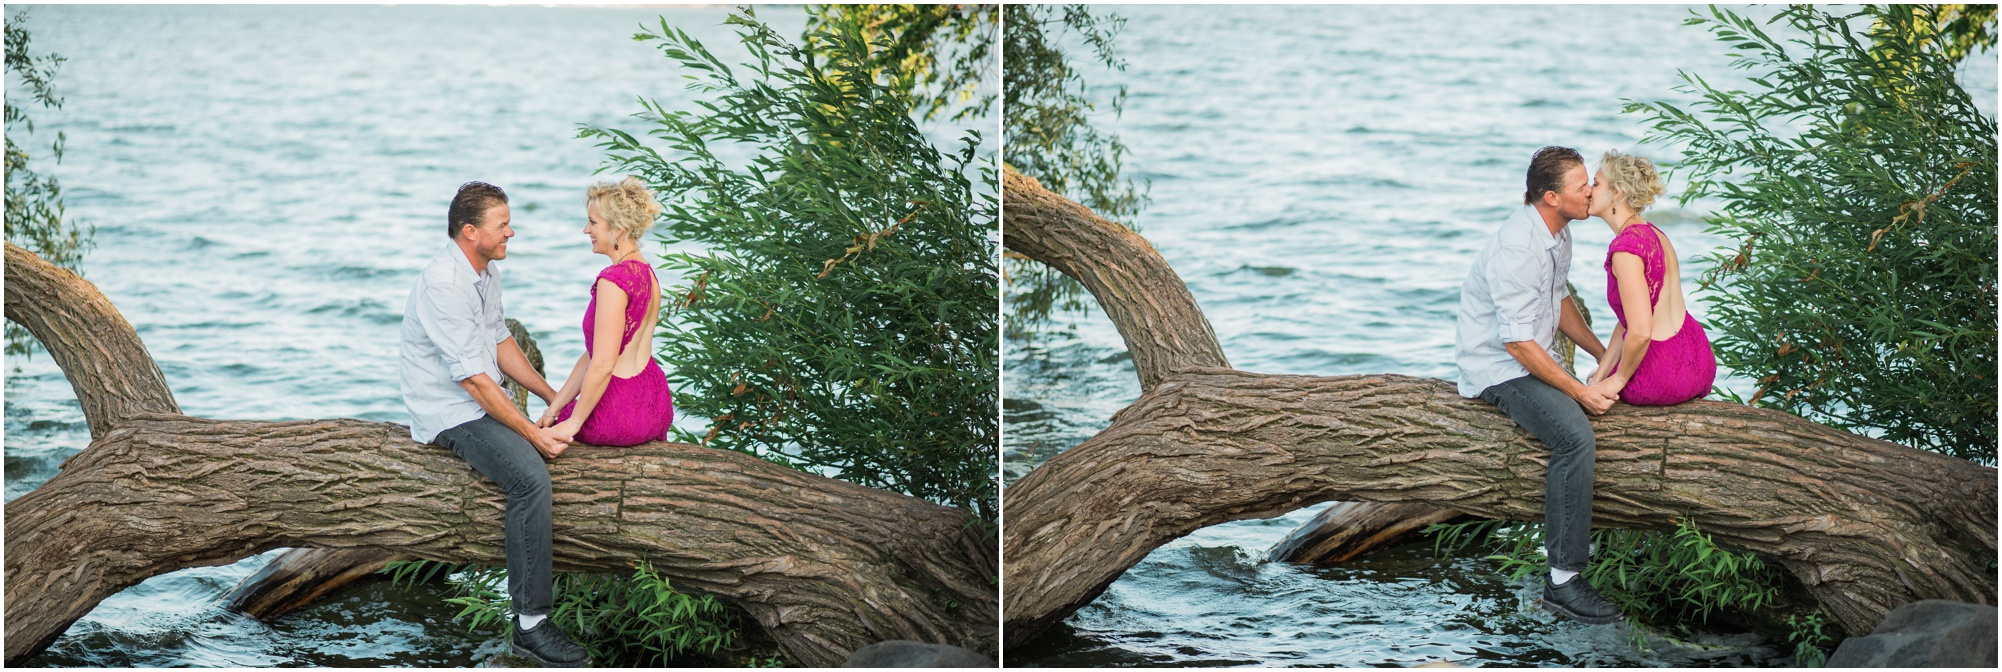 Madison-Engagement-Photographer-Picnic-Point-Madison-Wisconsin-Engagement-Session-Kelli-and-Robert-38.jpg